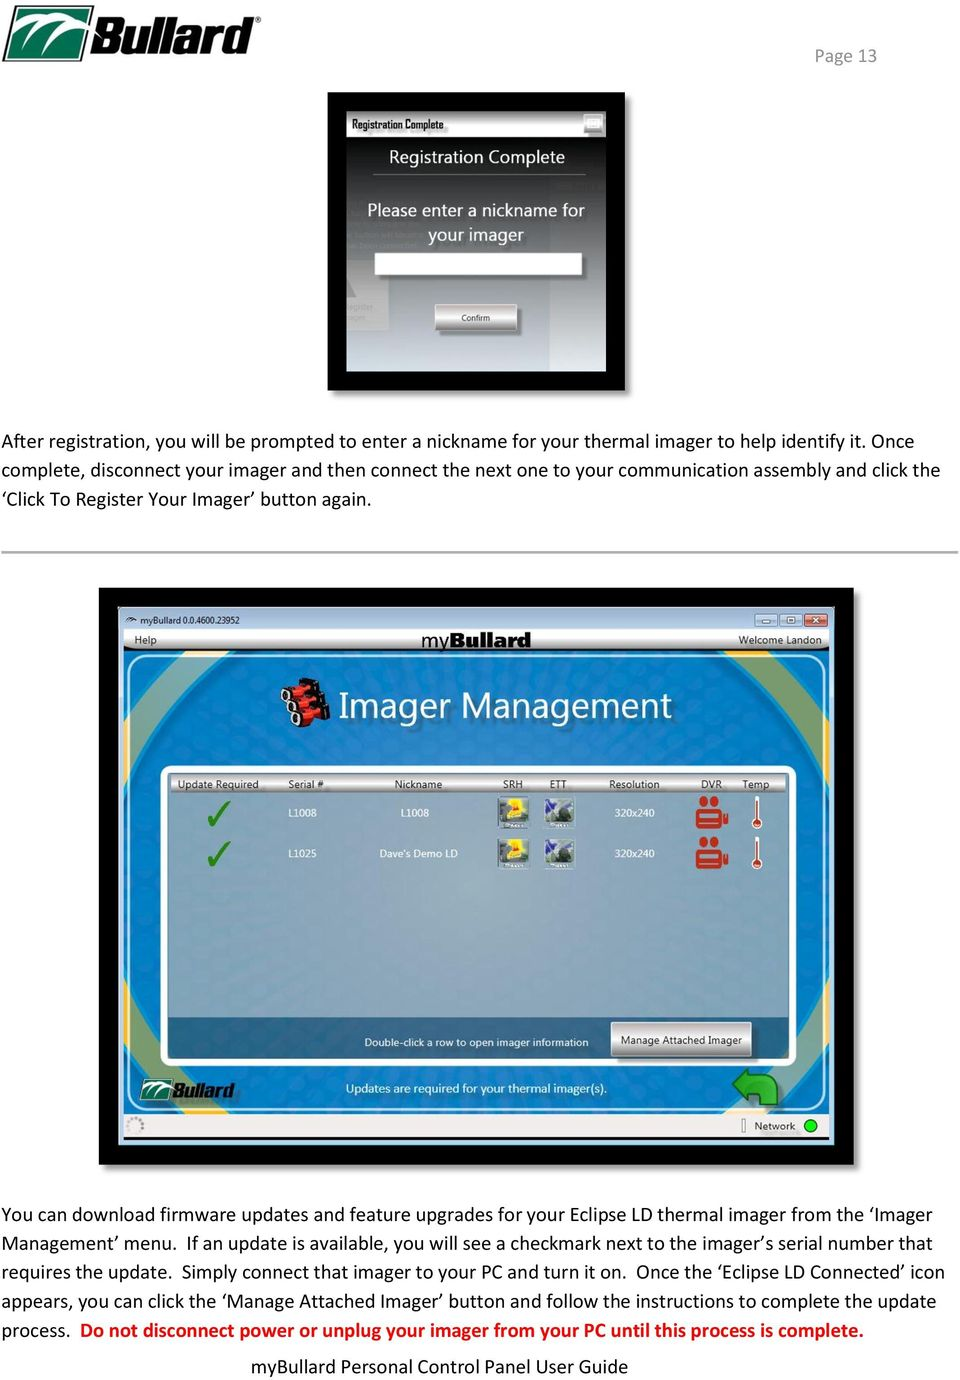 You can download firmware updates and feature upgrades for your Eclipse LD thermal imager from the Imager Management menu.